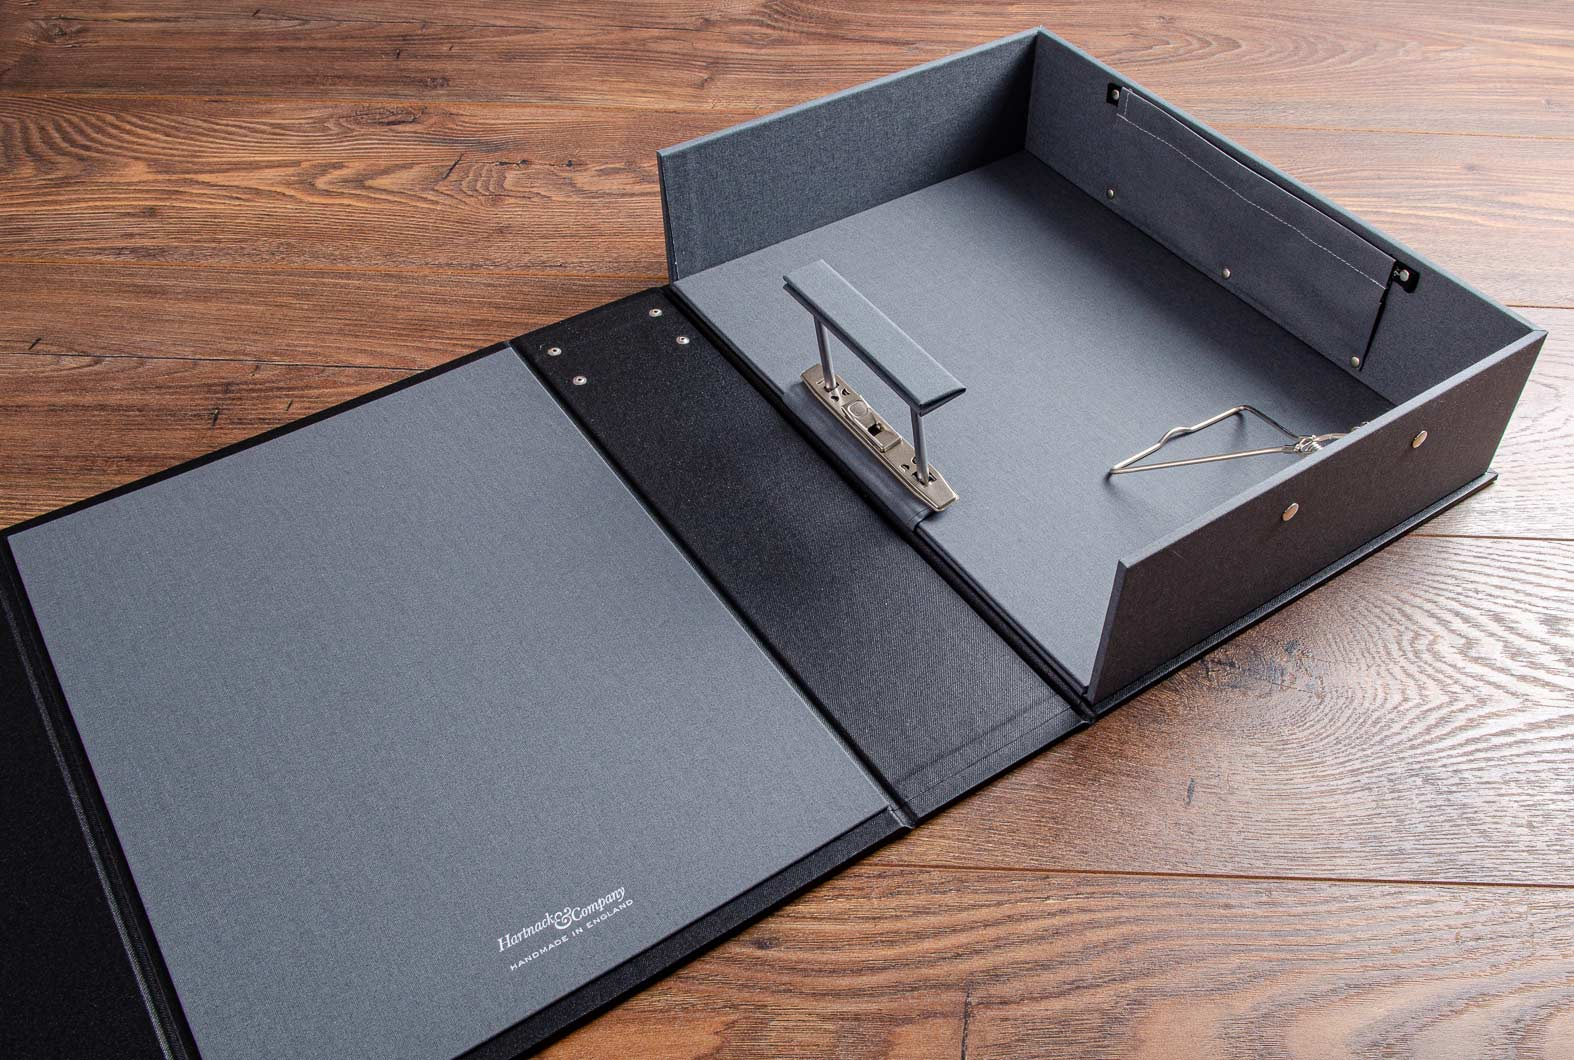 The vehicle box file consists of a hinged screw post binder, a spring clip and a pocket to keep the car keys in